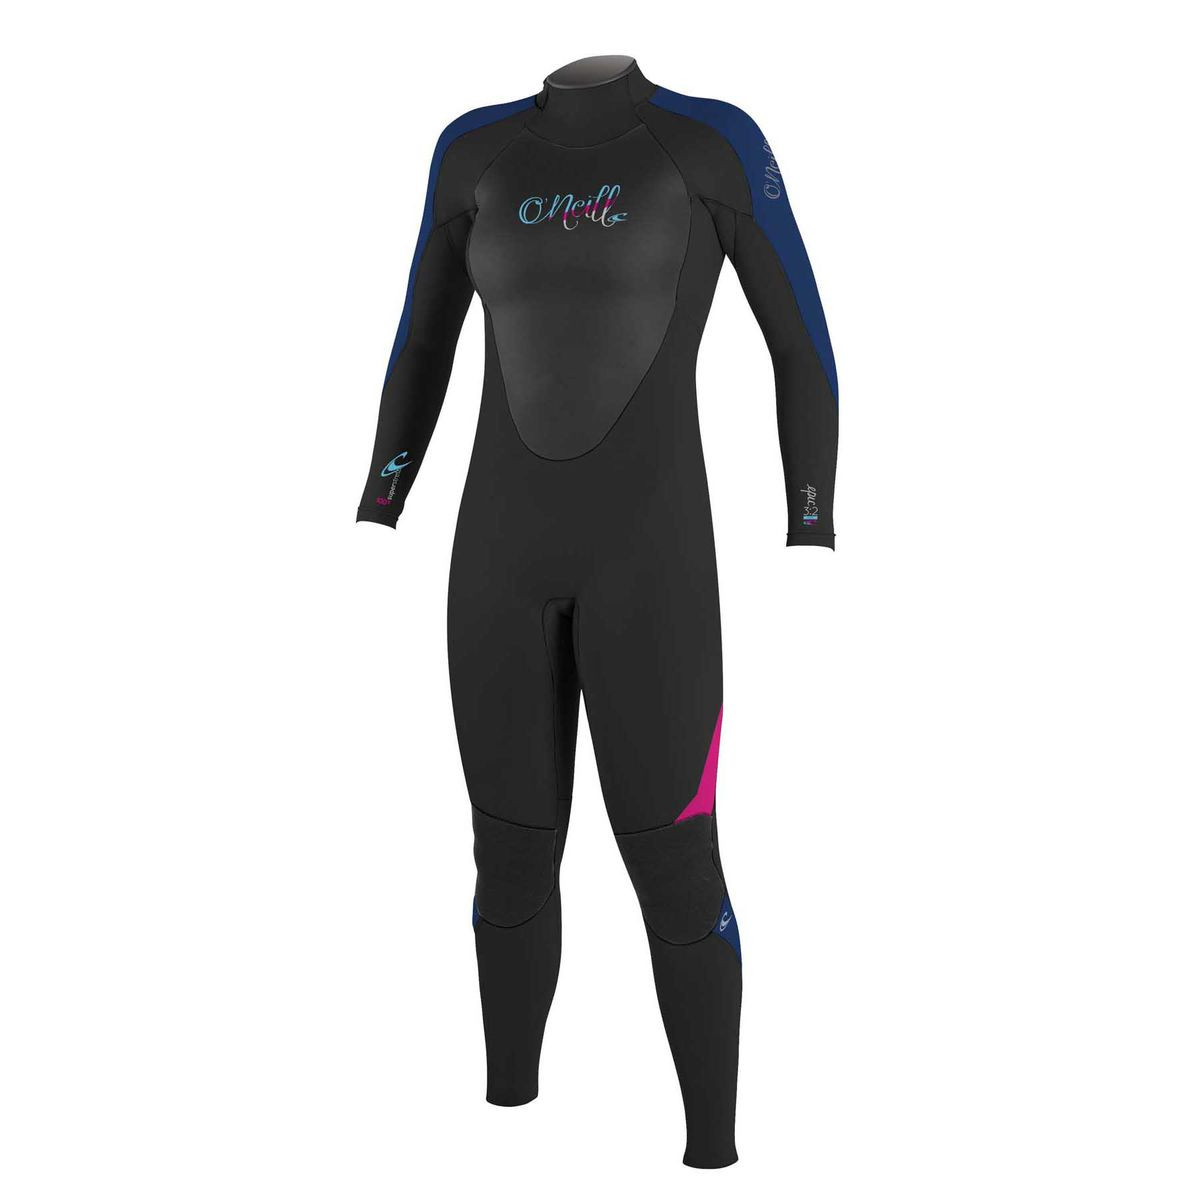 O'Neill Womens Epic 3/2mm Back Zip Wetsuit - Black/ Navy/ Berry